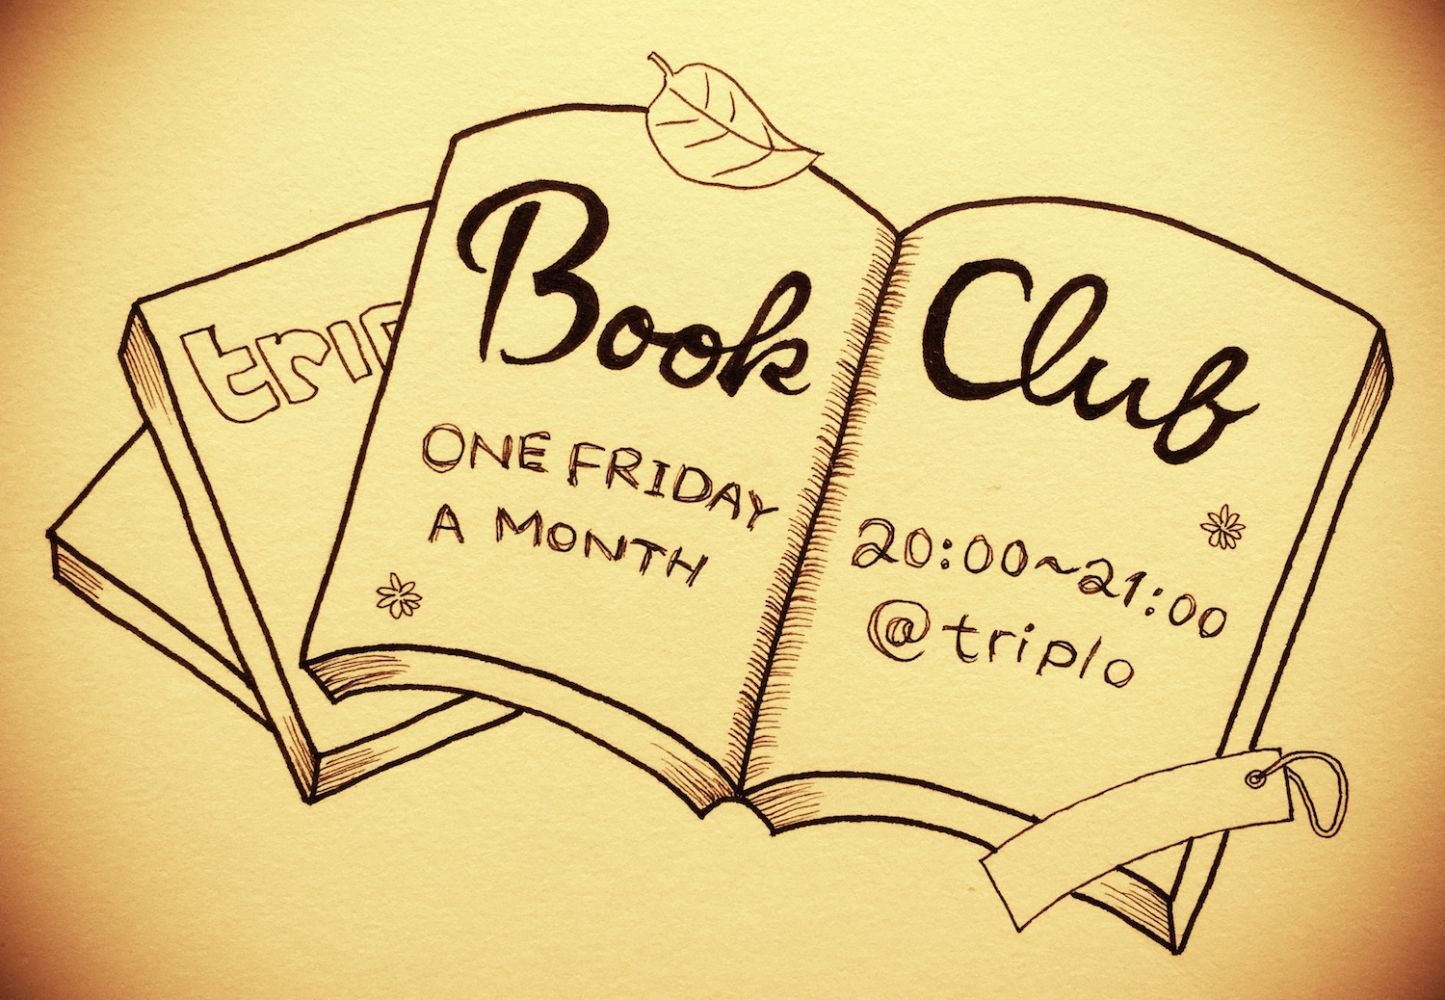 Book Club at triplo